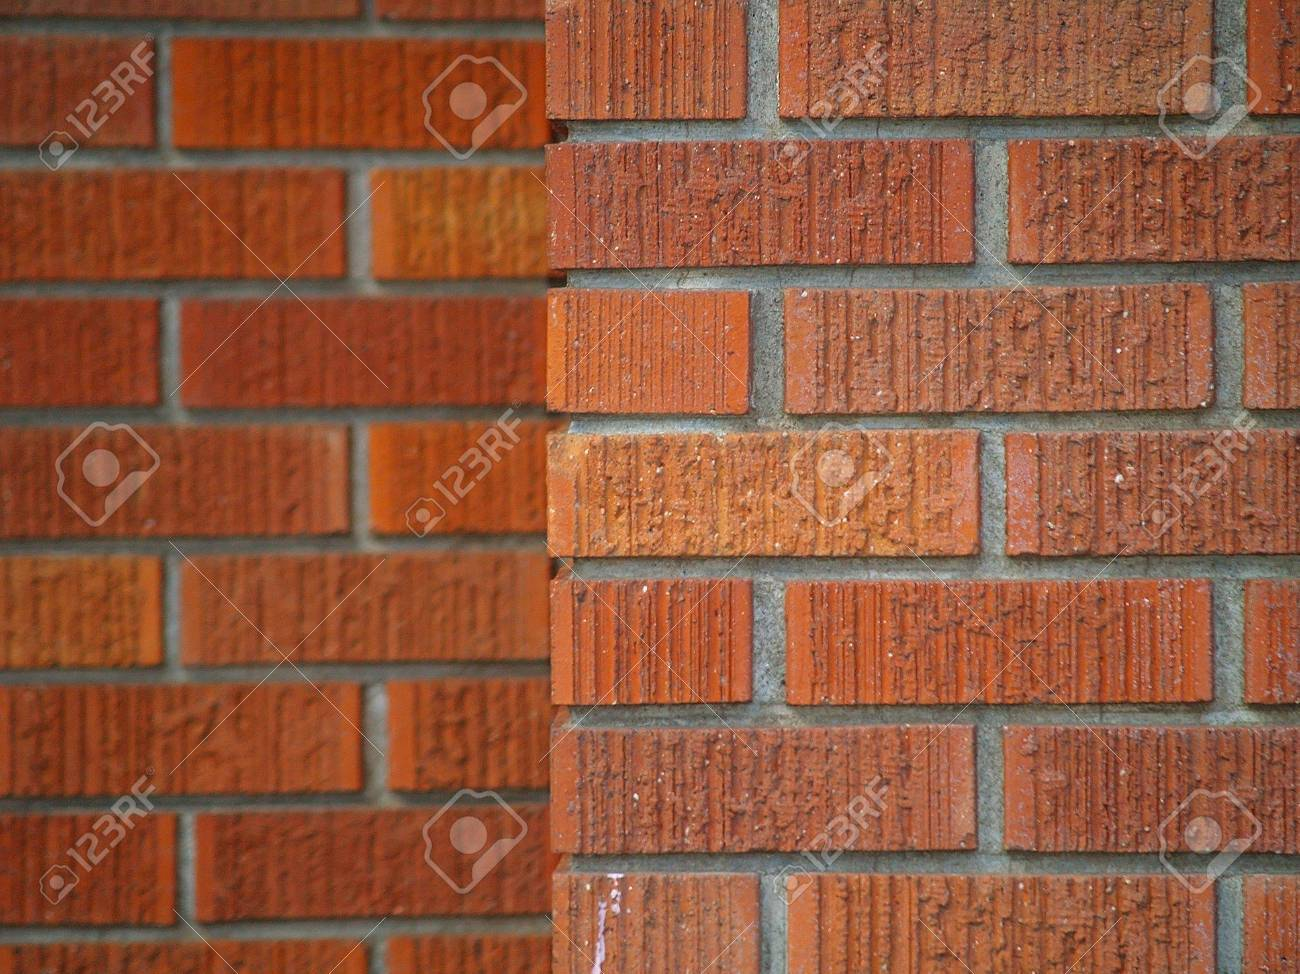 Brick wall backgrounds, all in good repair, in various shades